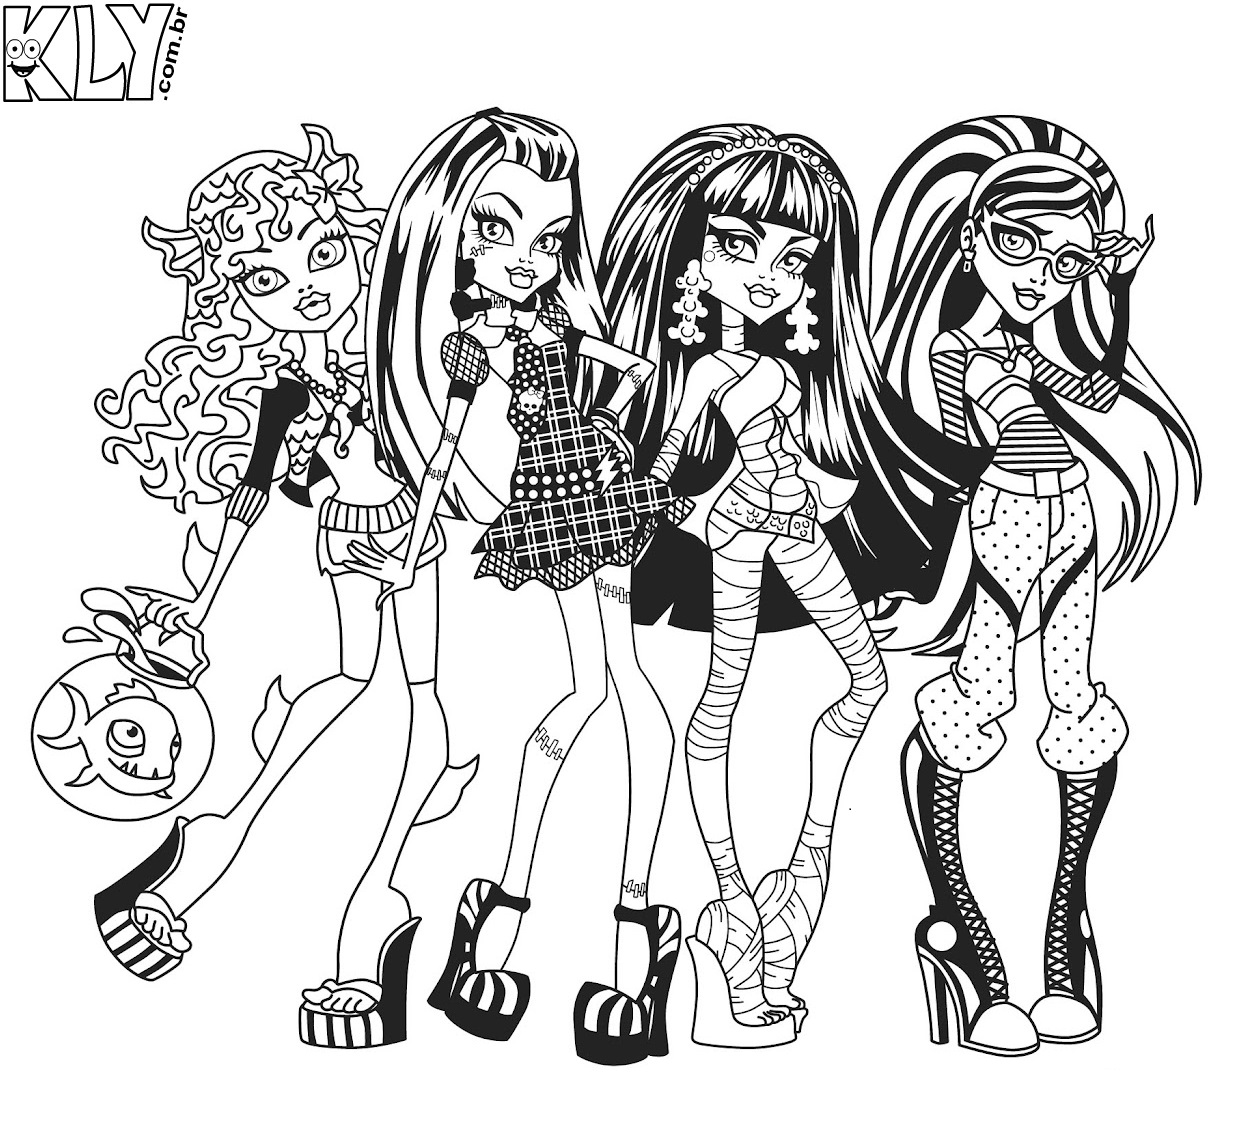 Related To Monster High Do Rique Stein  Desenhos Para Colorir